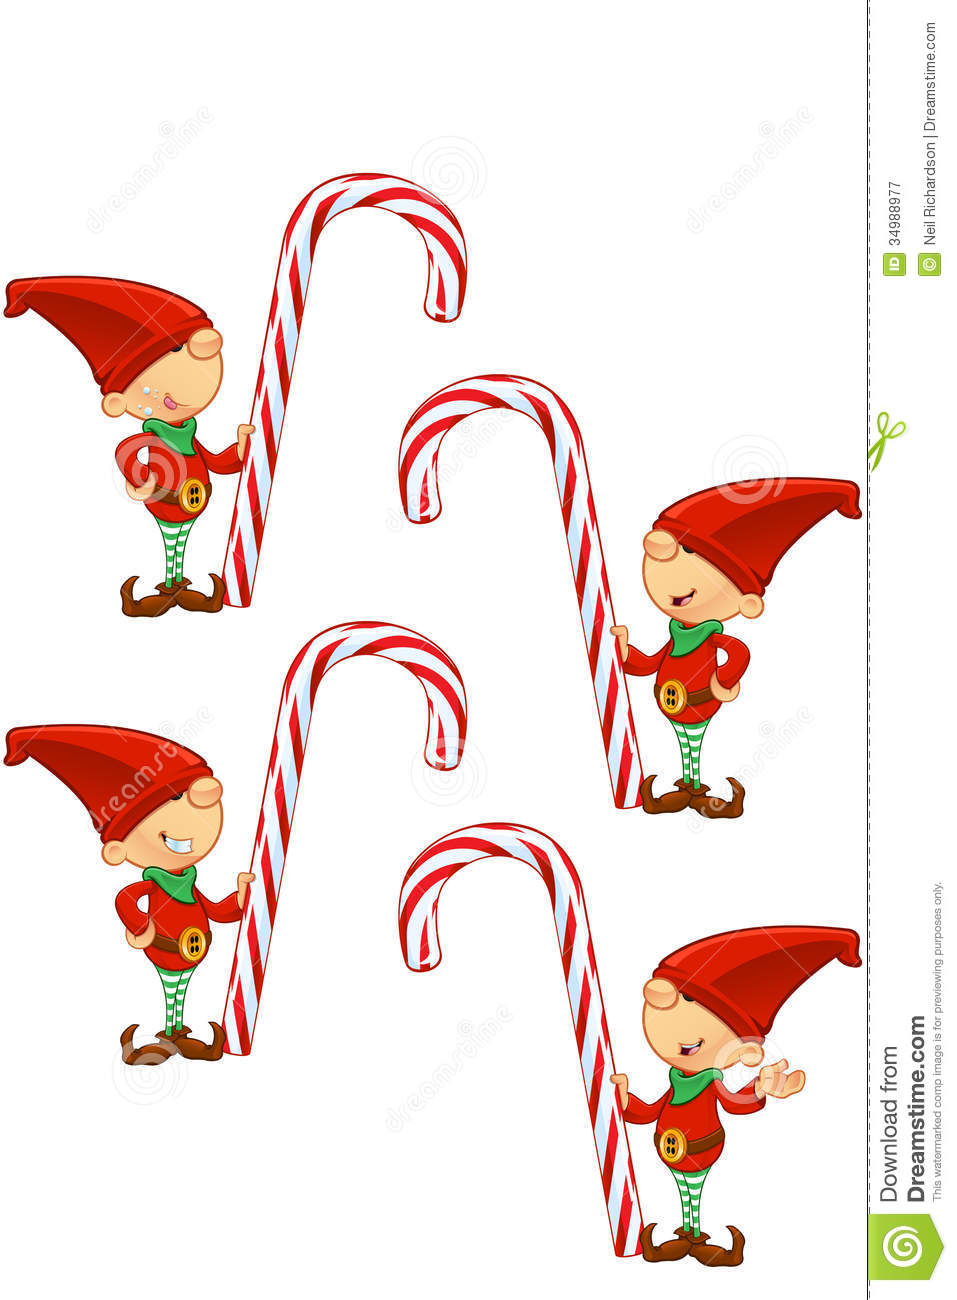 Candy Cane Toon Fantasy